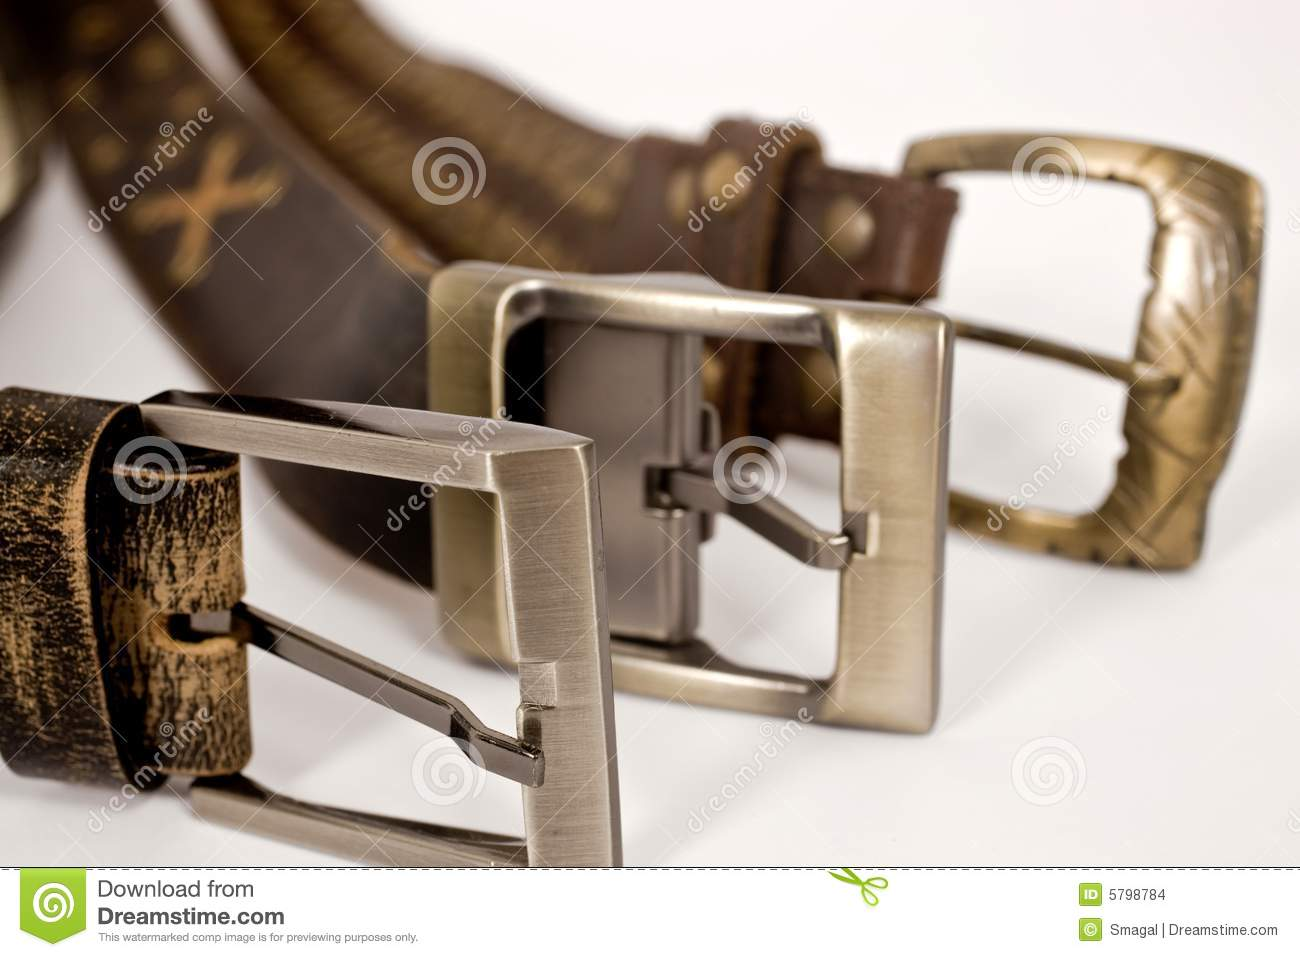 Different types of buckles